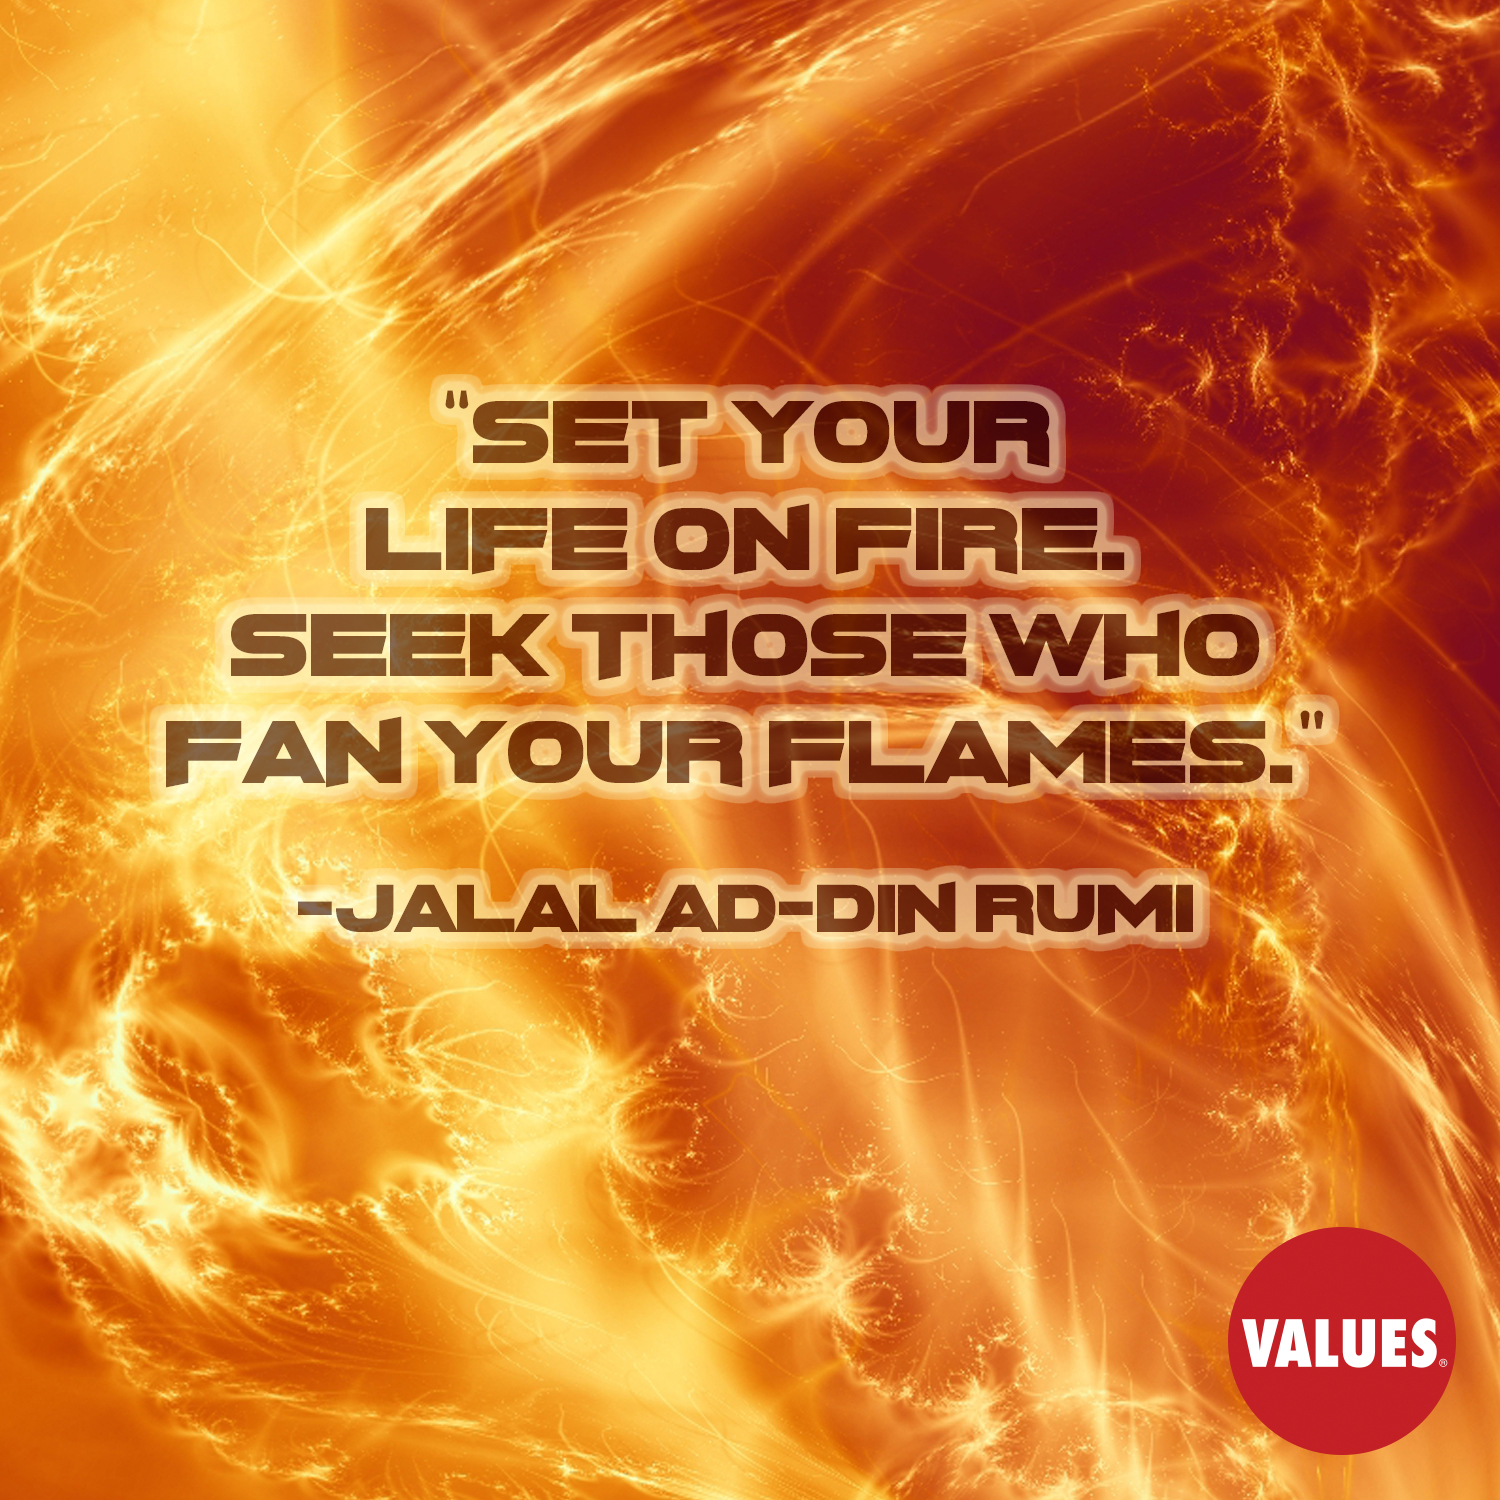 Set your life on fire. Seek those who fan your flames. —Jalal ad-Din Rumi